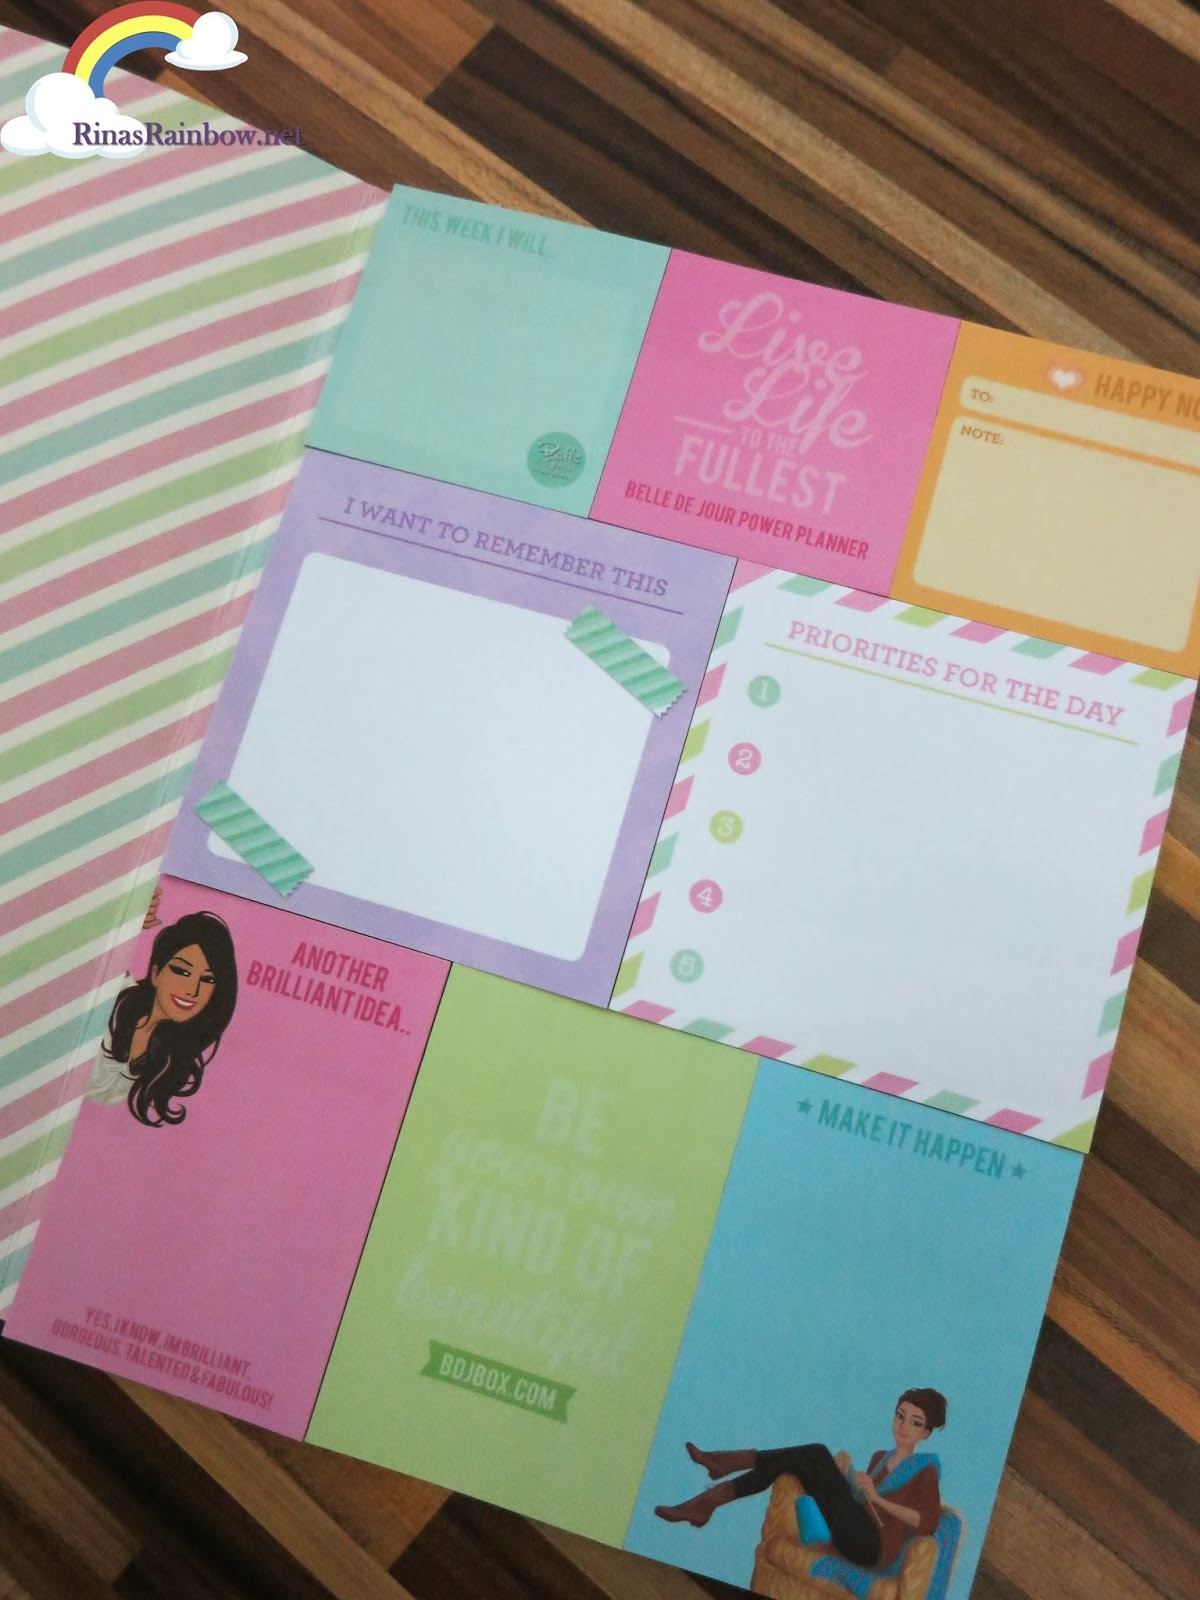 belle de jour sticky notes 2014